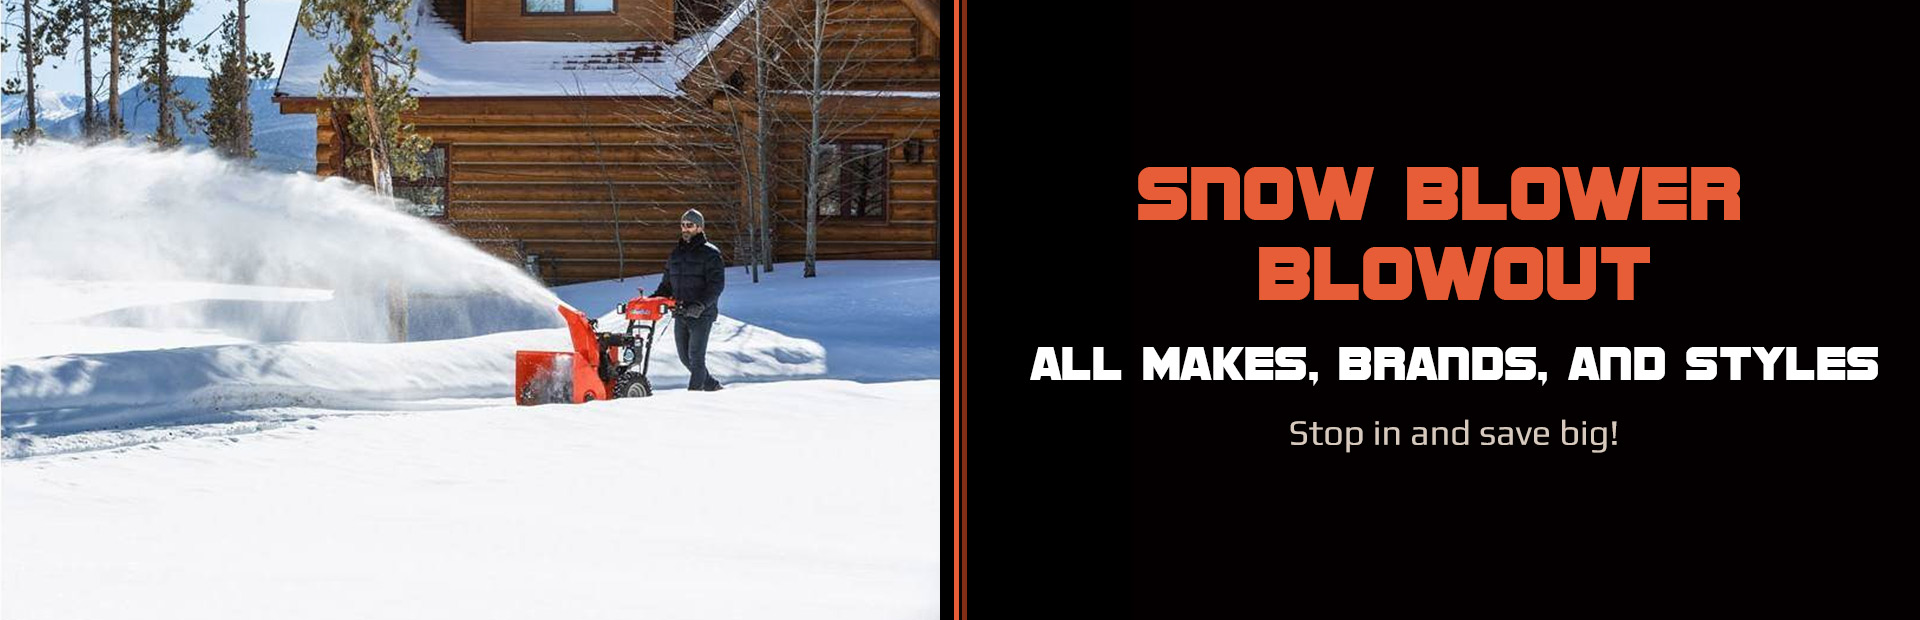 Snow Blower Blowout: Stop in and save big!